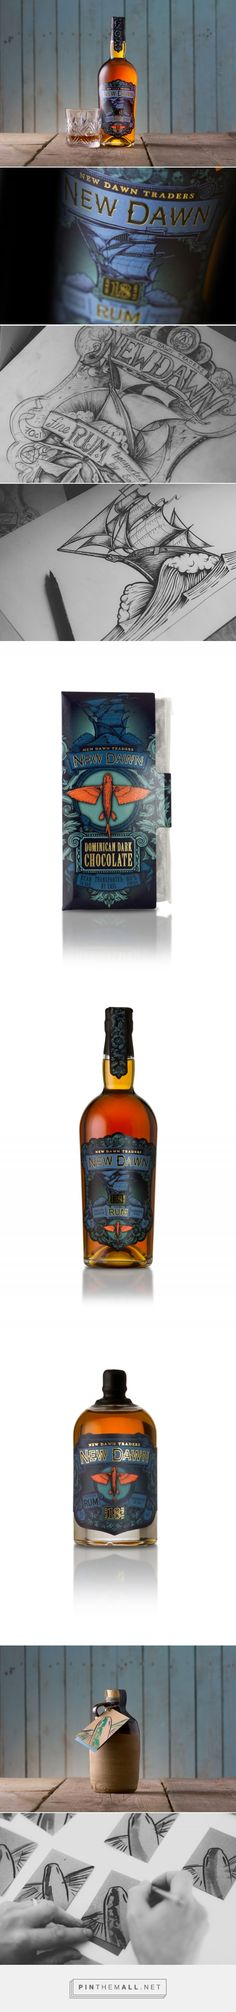 New Dawn Traders Rum   Rum label design, Illustration... - a grouped images picture - Pin Them All